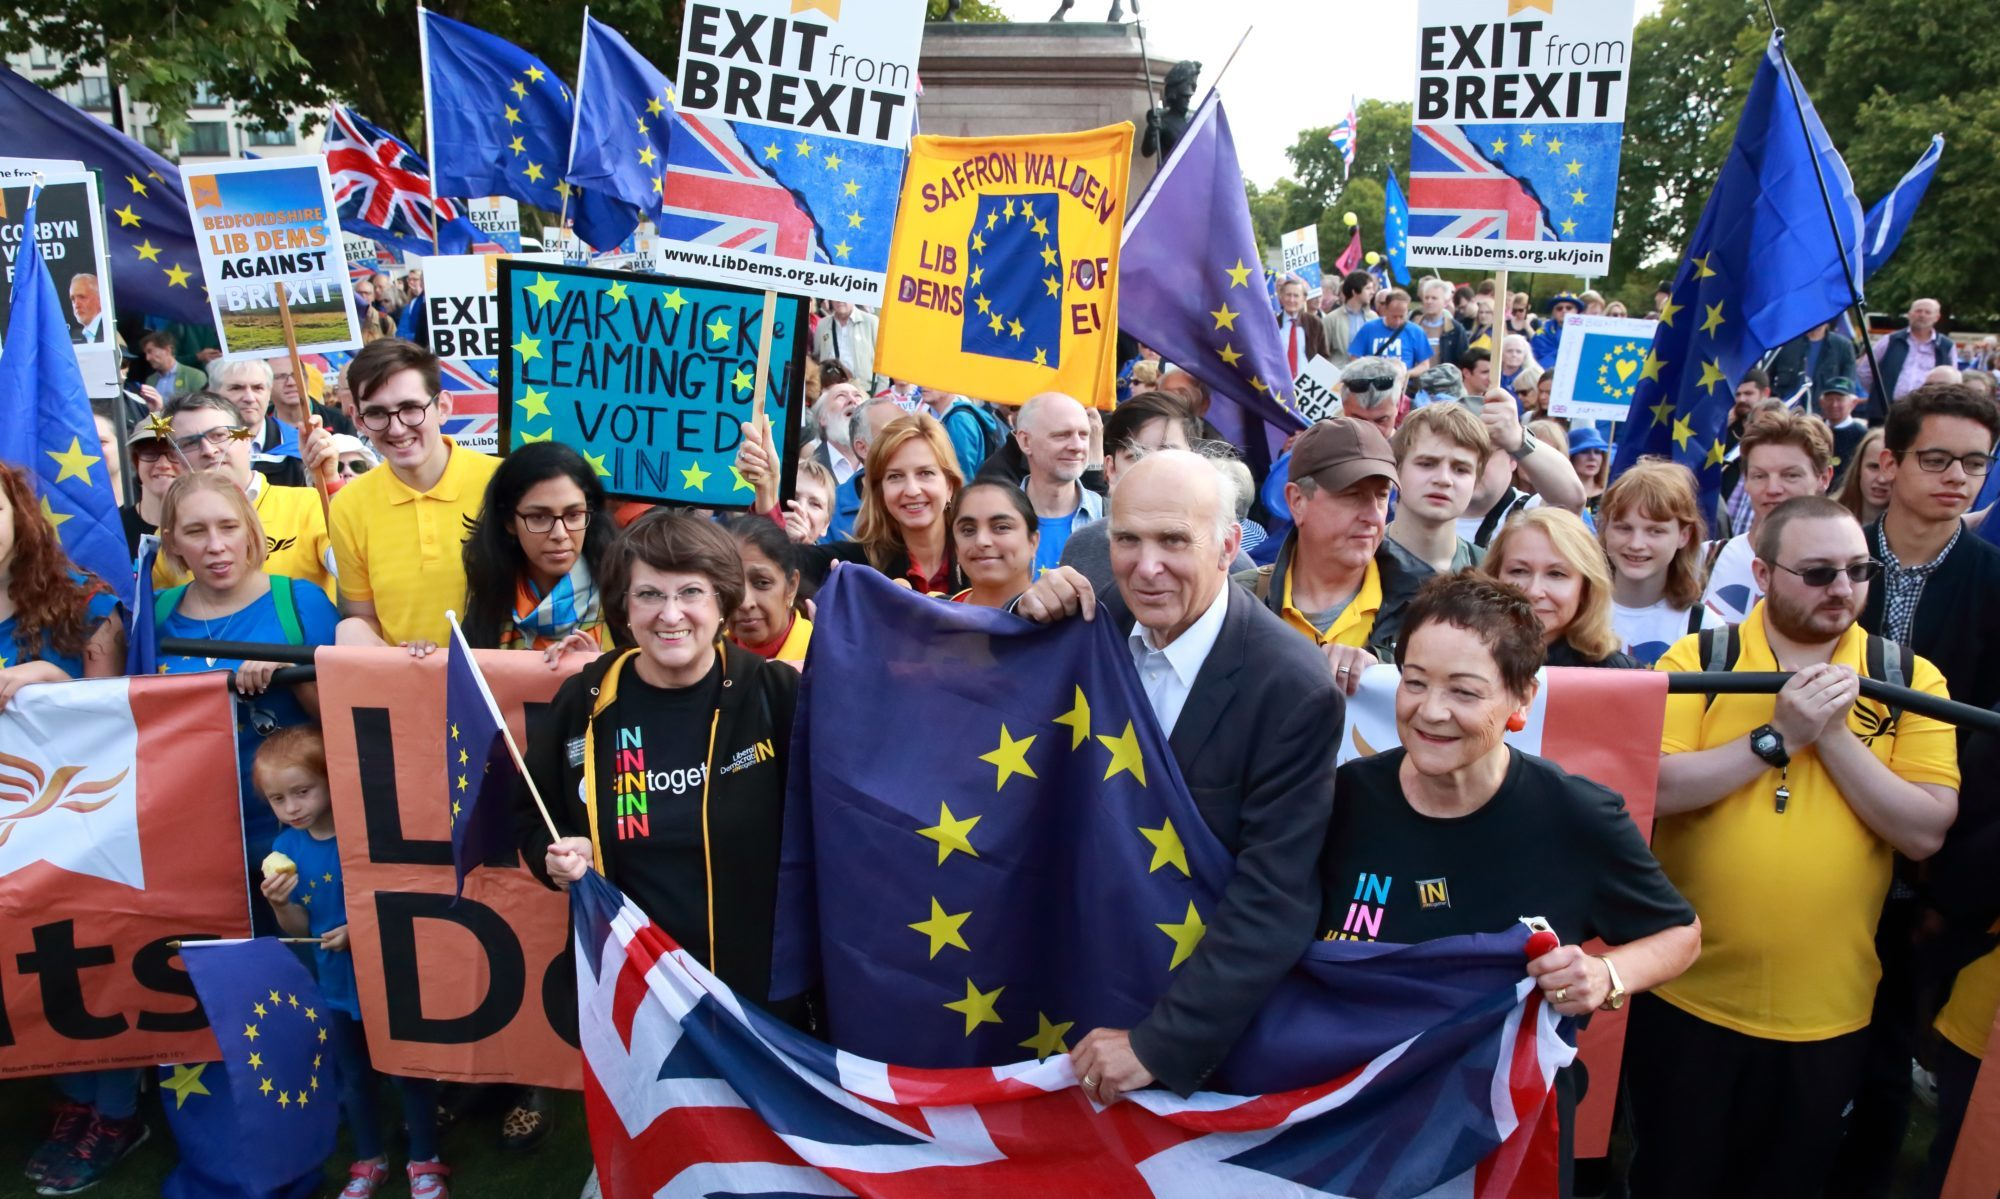 Vince Cable and Liberal Democrats on Europe March 2017